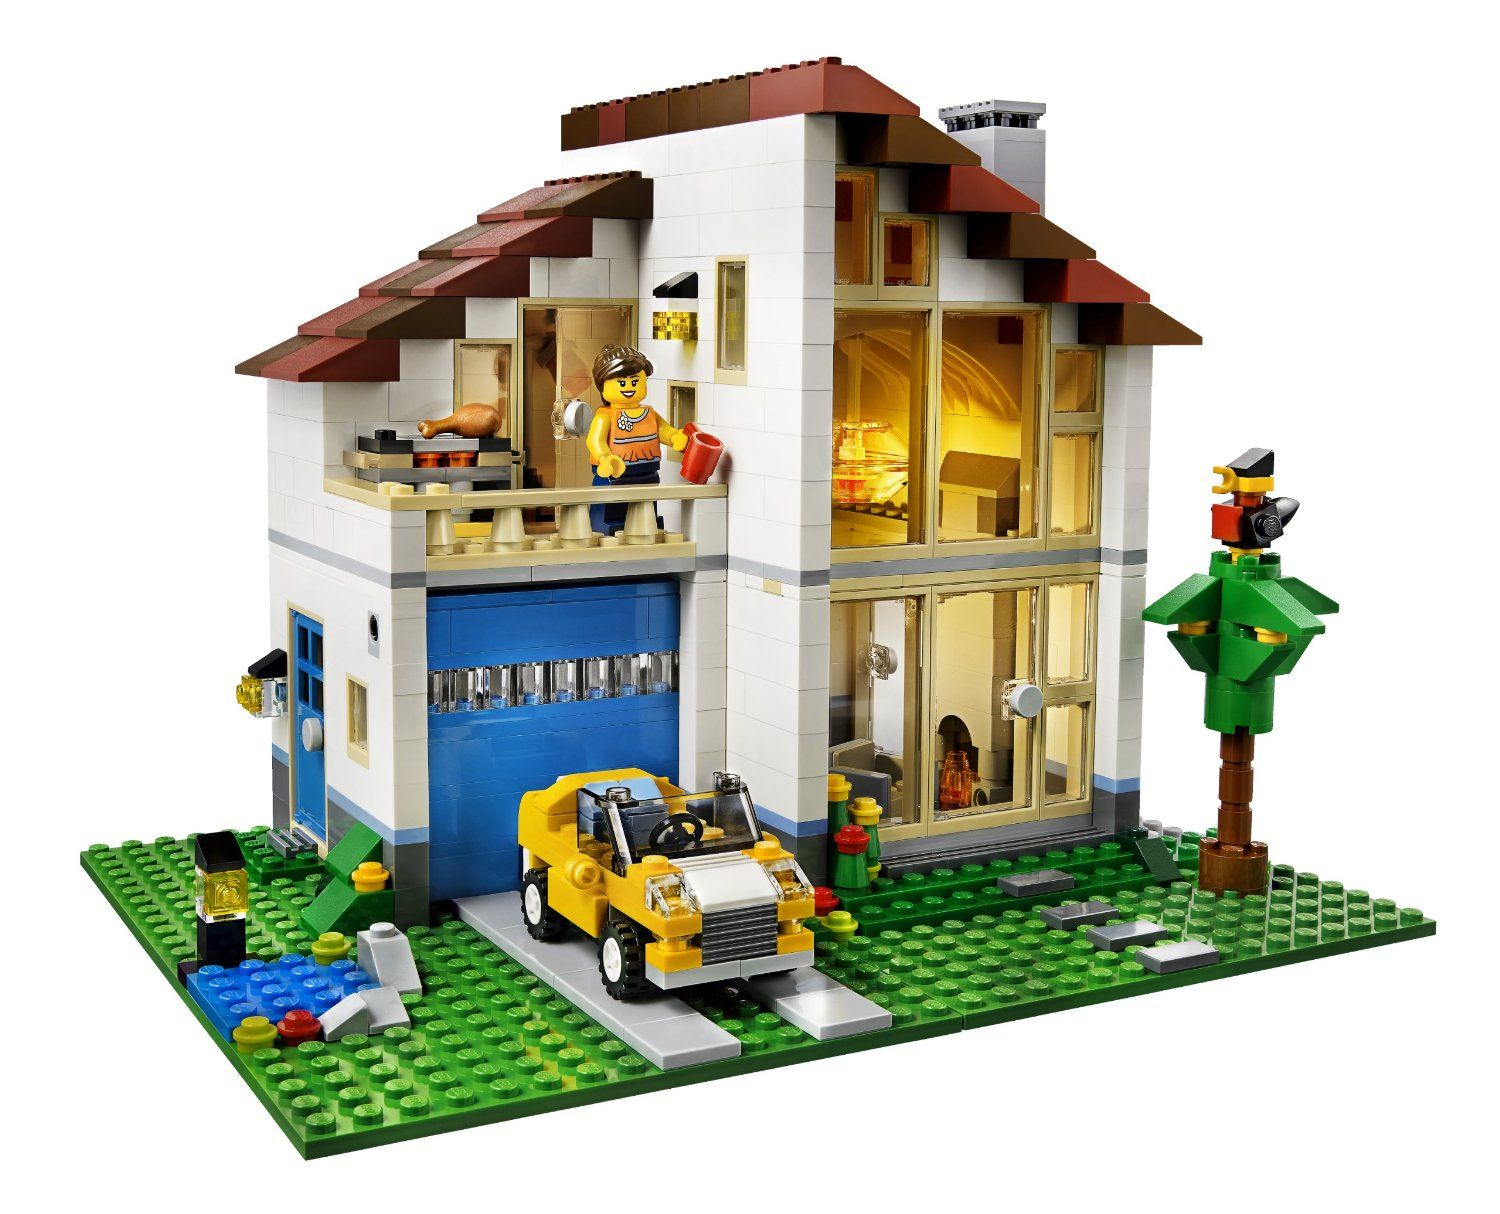 lego creator 3 in 1 home playsets are awesome lego house toys and lego. Black Bedroom Furniture Sets. Home Design Ideas